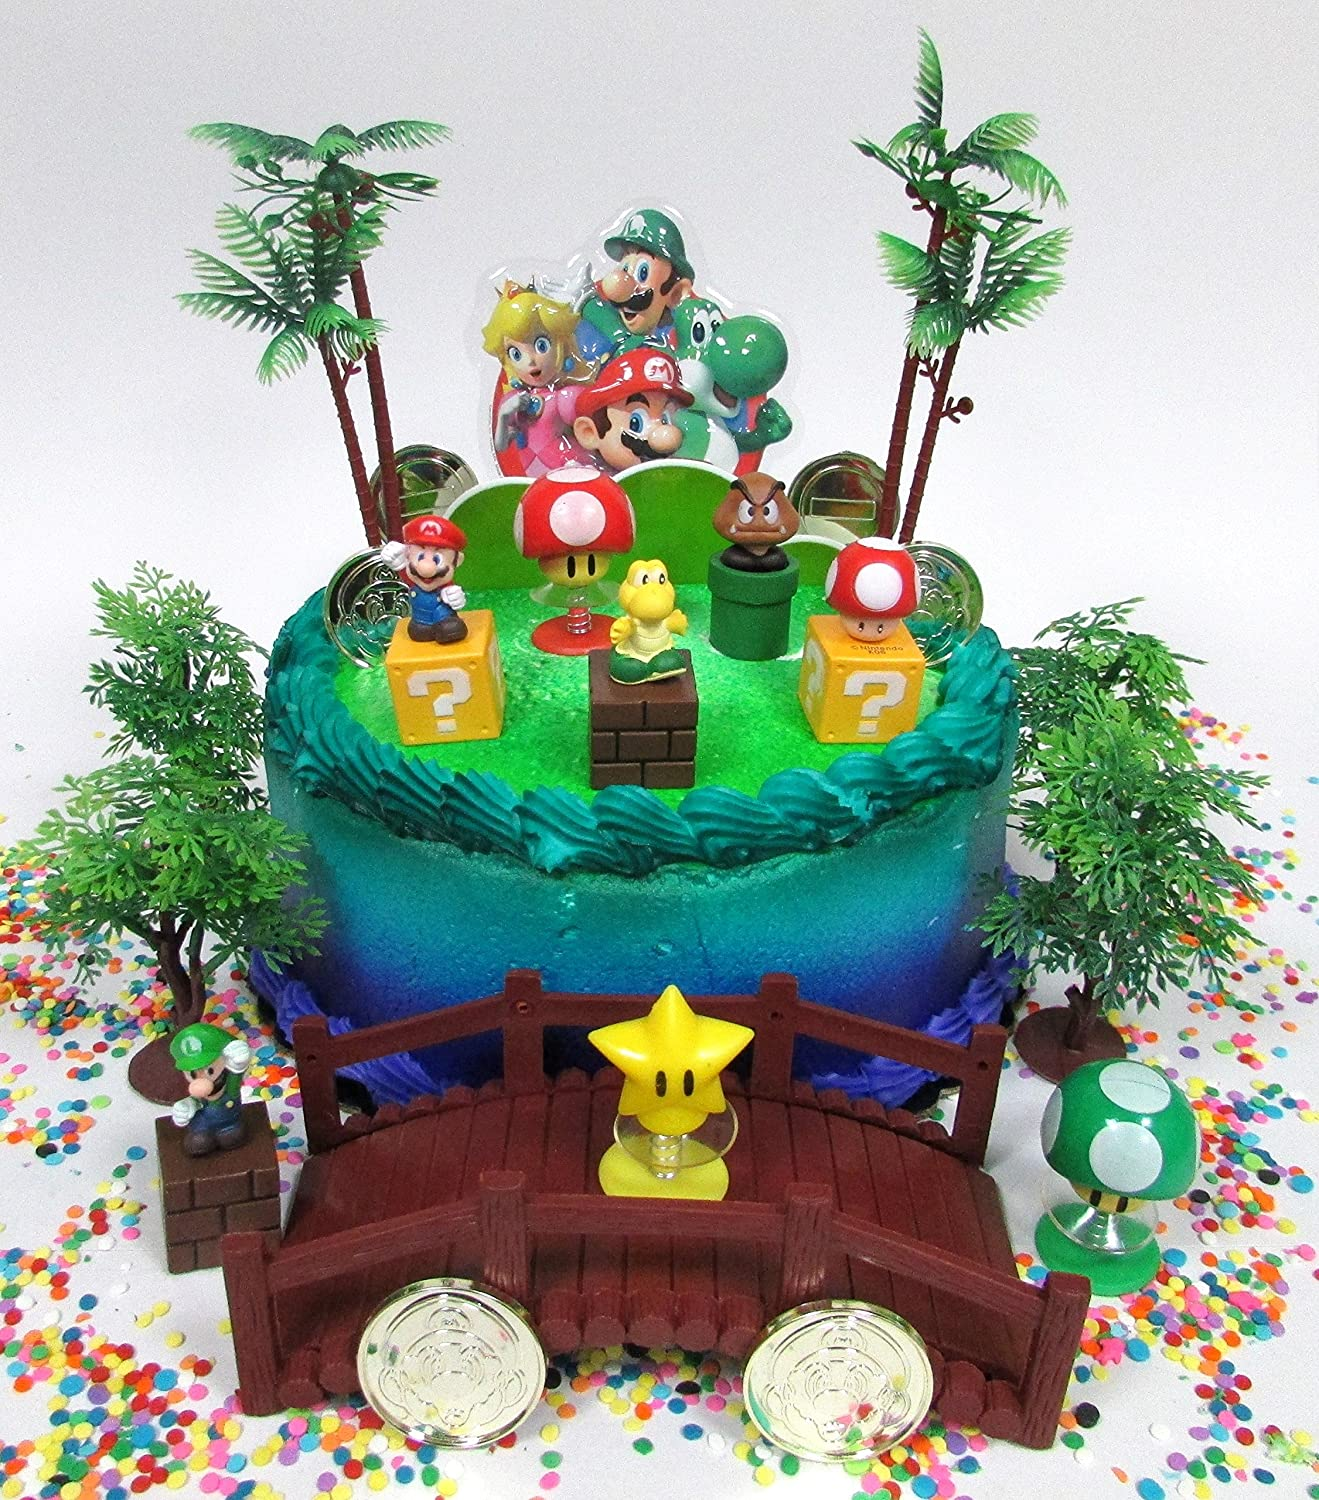 Phenomenal Amazon Com Cake Toppers Super Mario Brothers Deluxe Game Scene Funny Birthday Cards Online Bapapcheapnameinfo